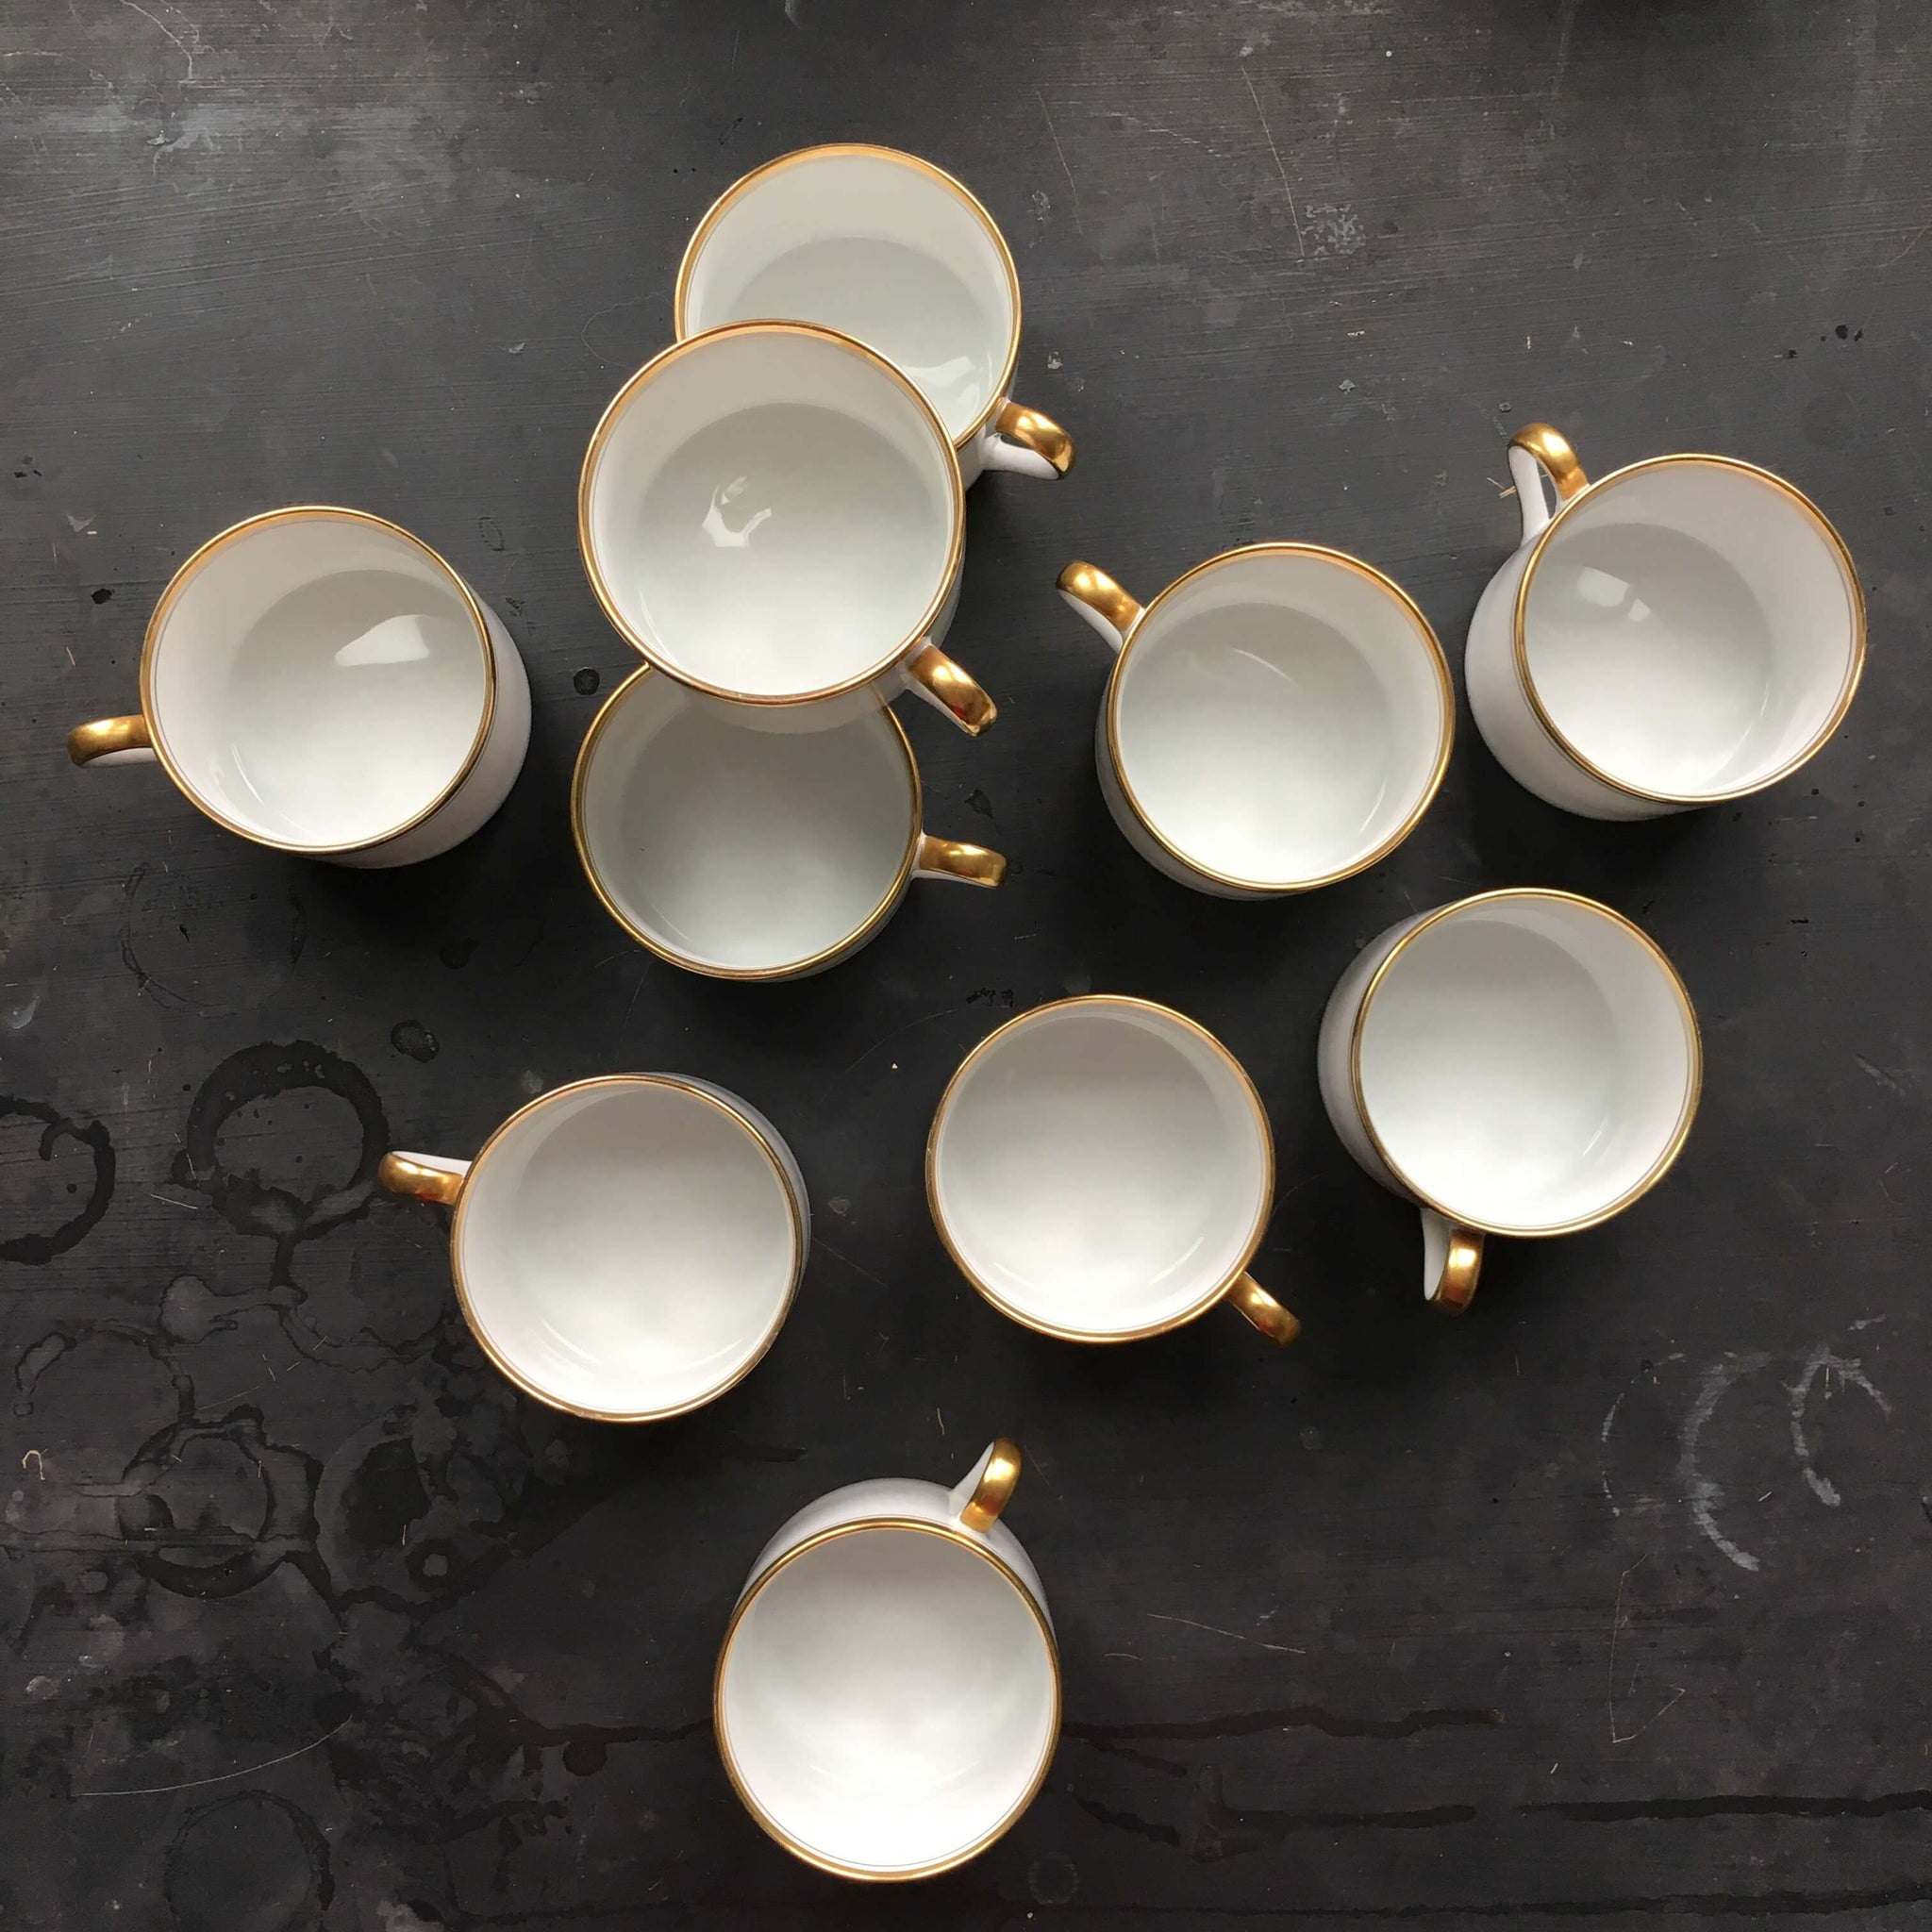 Vintage 1970's Fitz & Floyd Palais Flat Cups - Set of 10 White & Gold Striped Cups